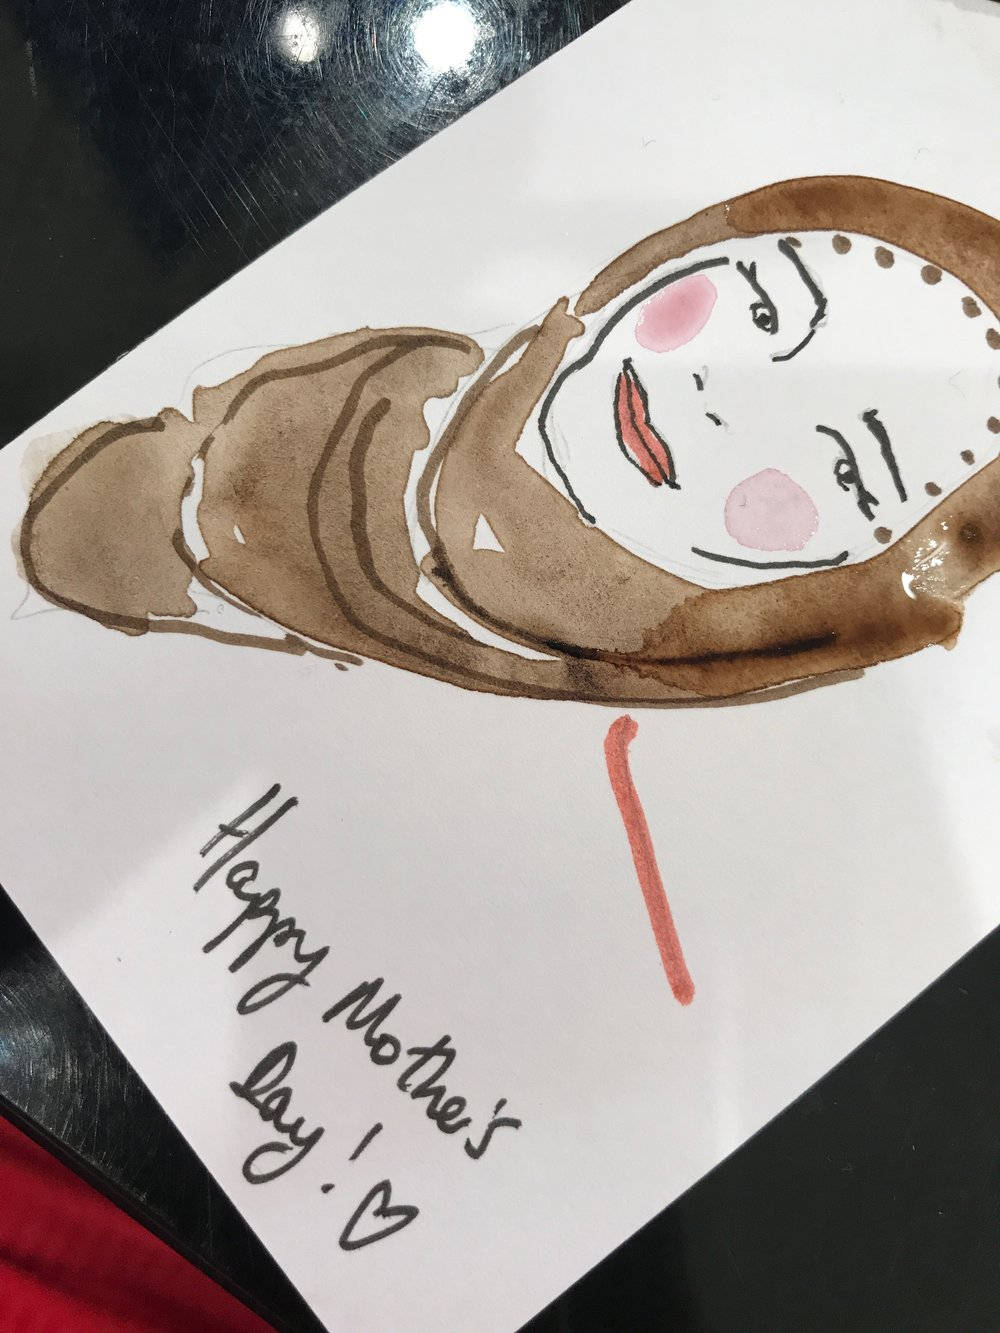 Sarahsmartdraws live fashion illustration on gift tags selfridges negle Image collections